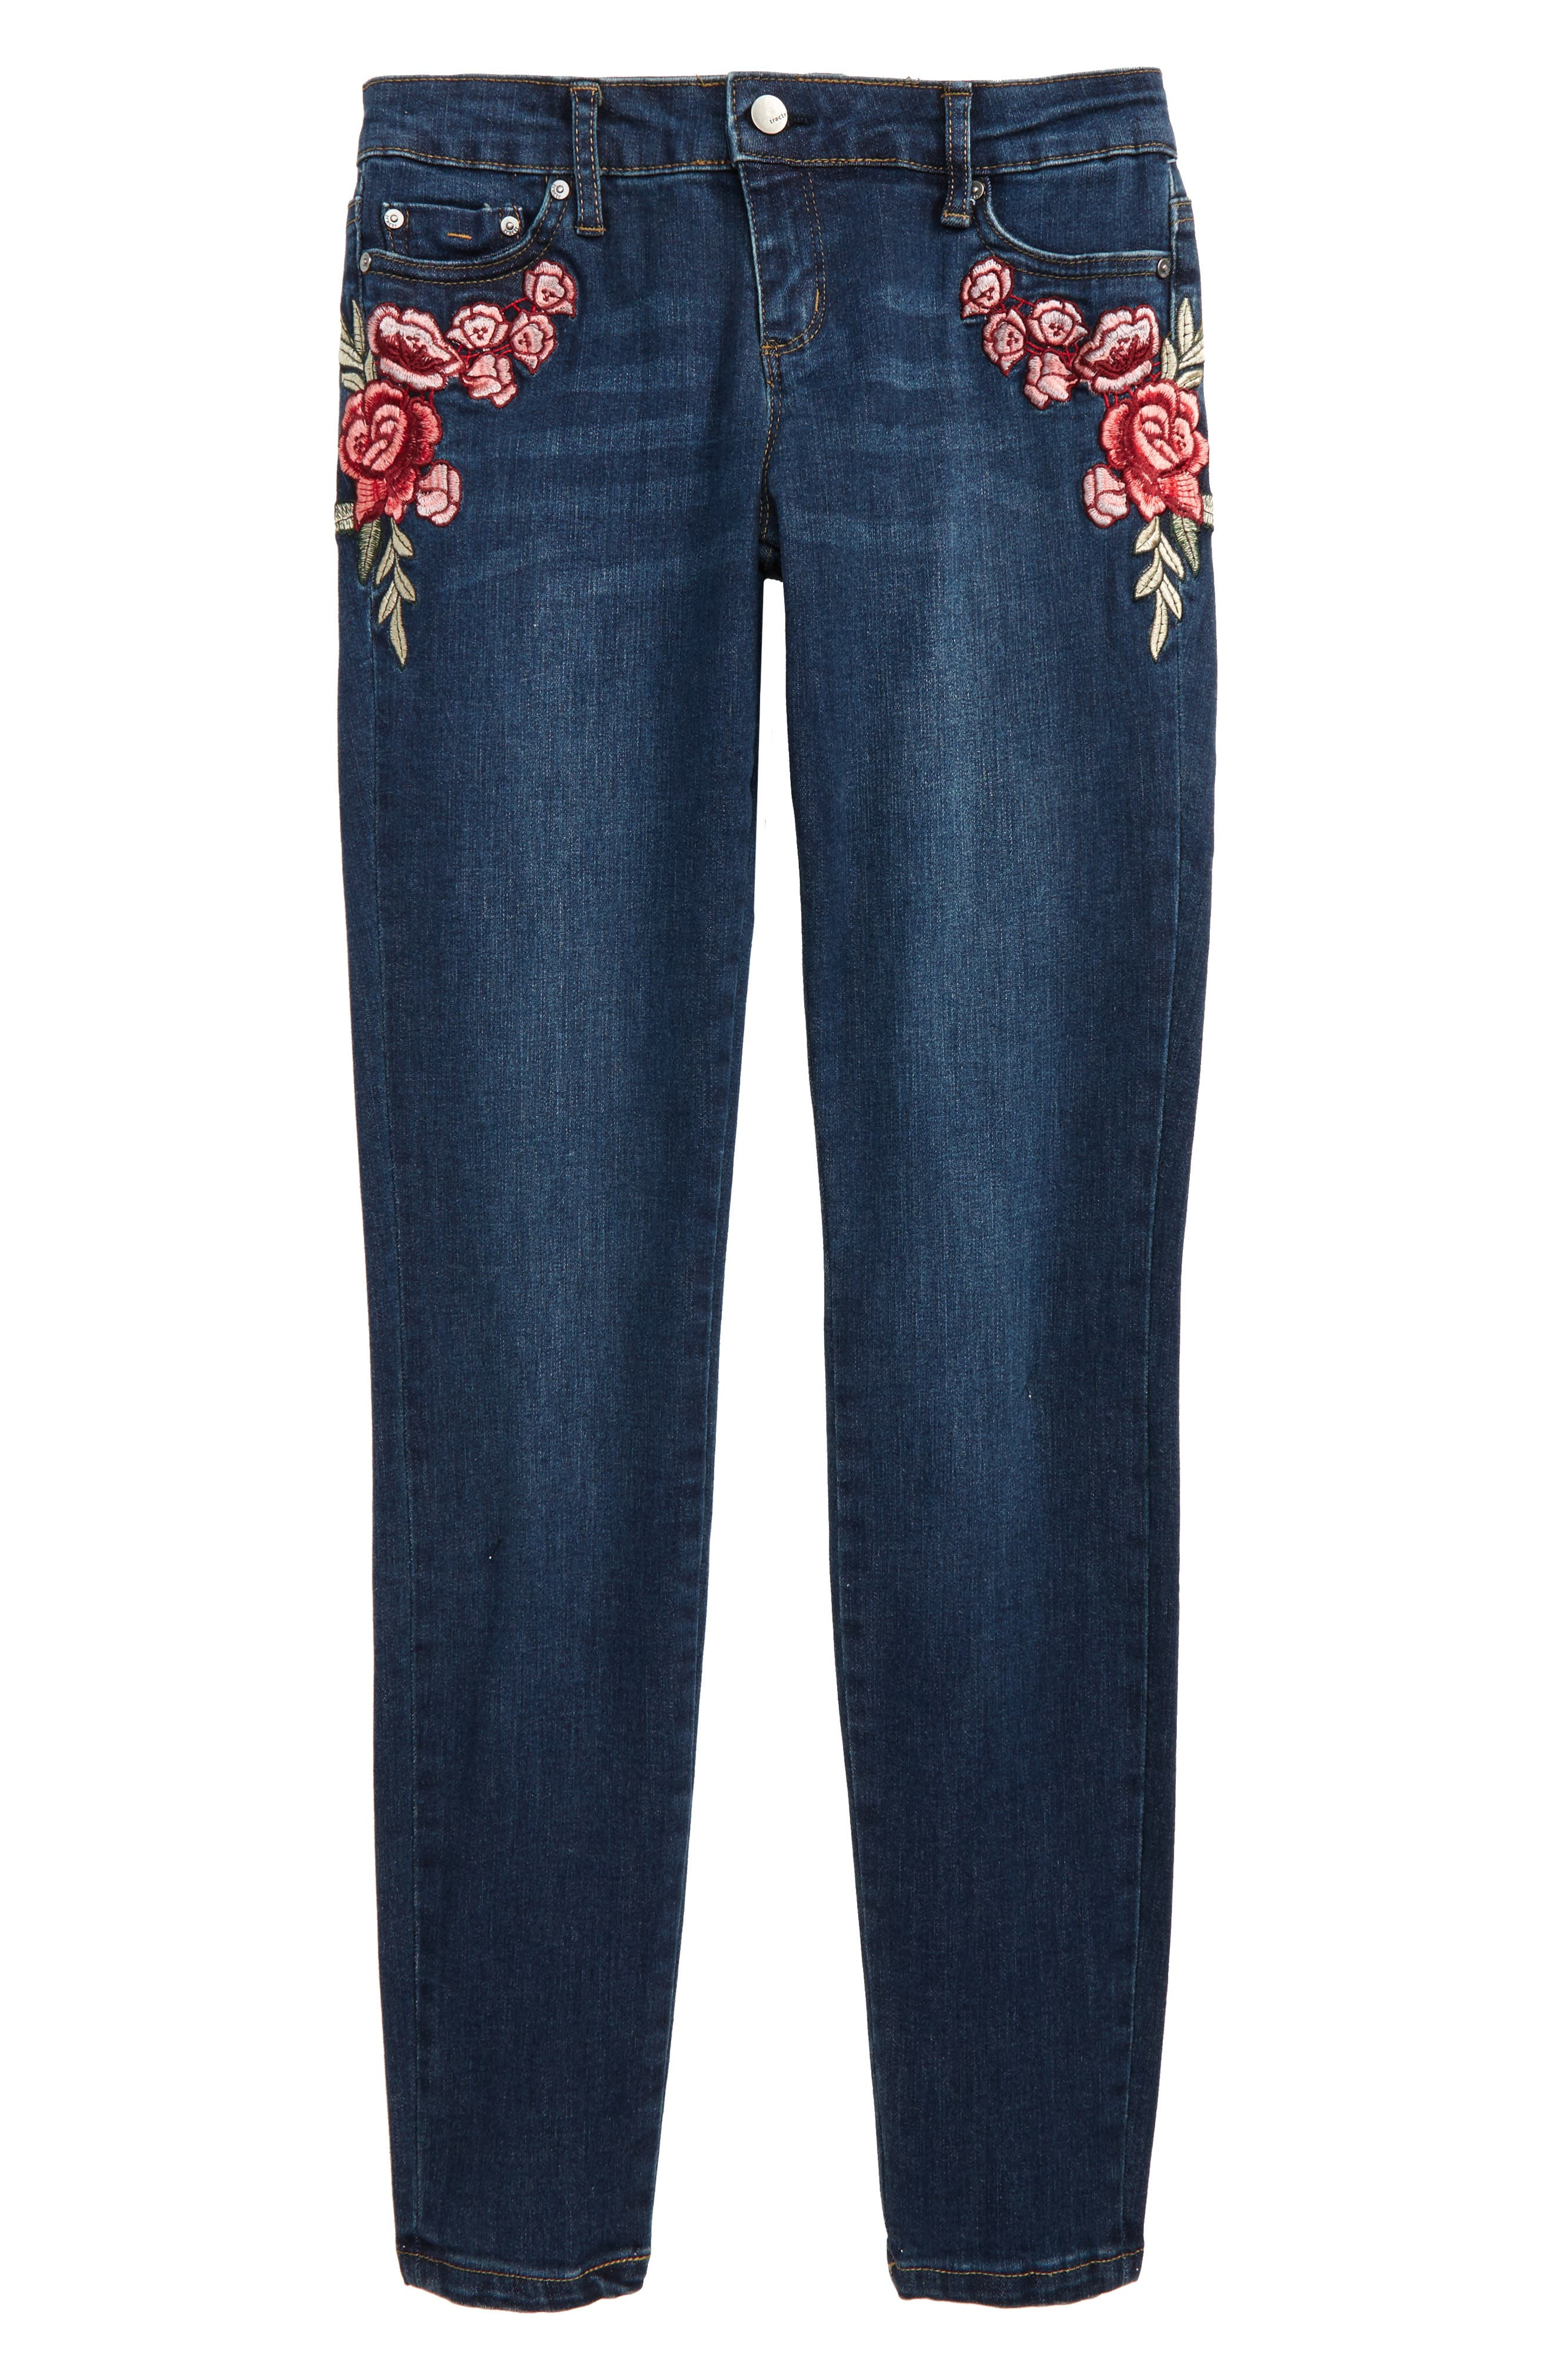 Tractr Rose Embroidered Skinny Jeans (Big Girls)